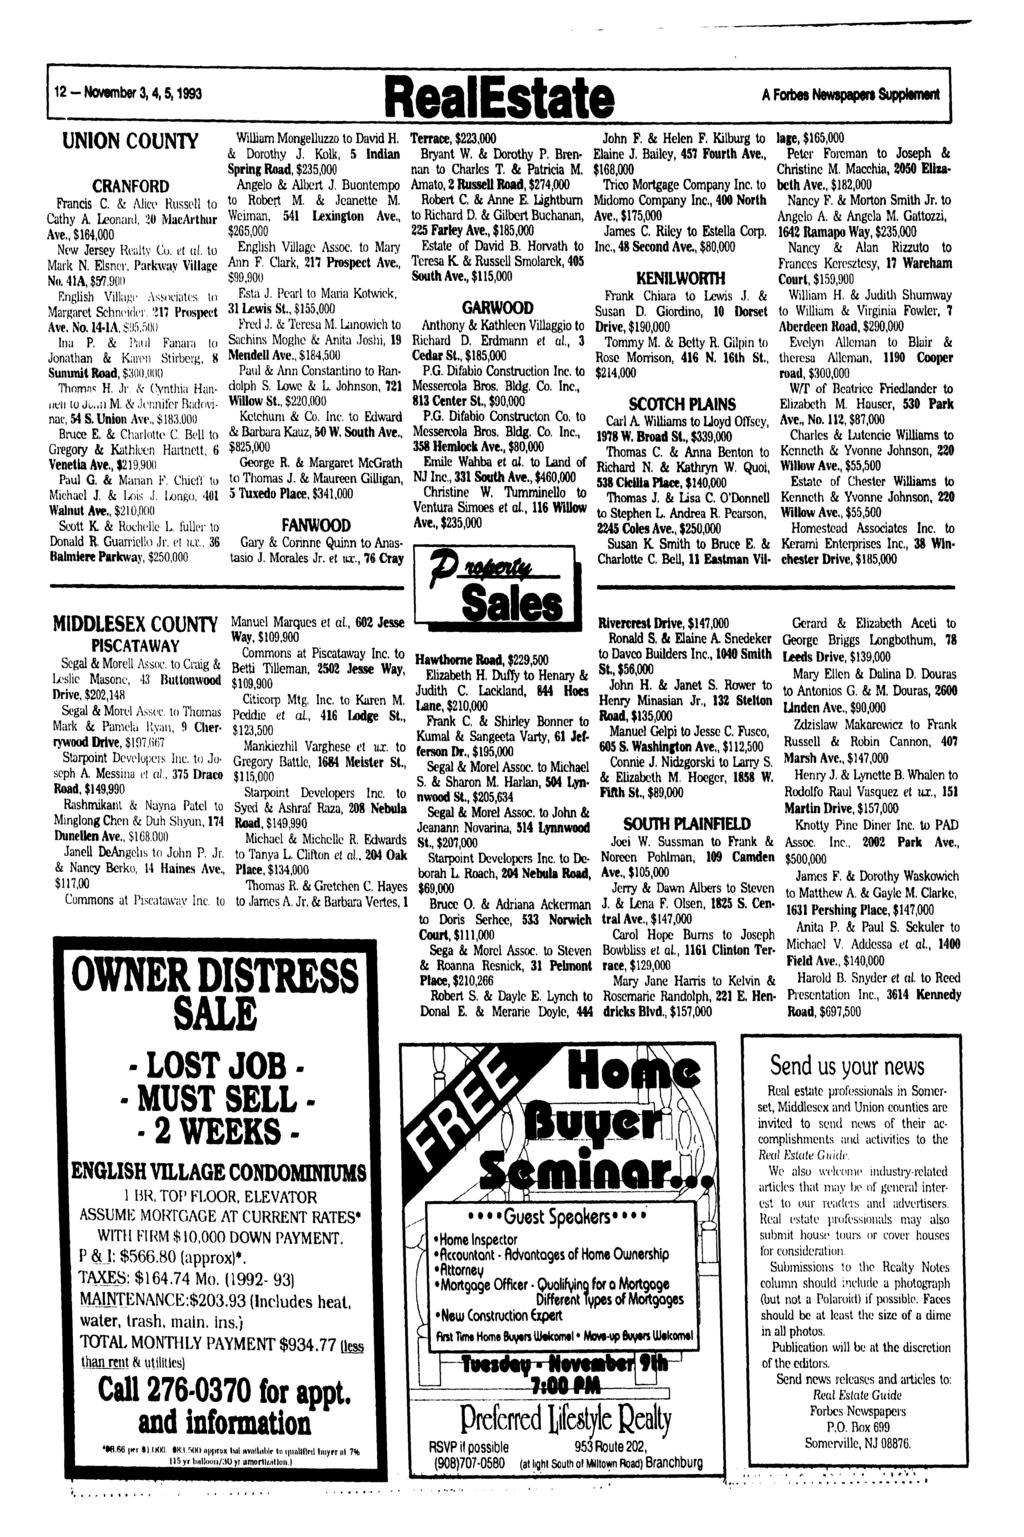 12 - November 3,4,5,1993 RealEstate A Forbes Newspaper! Supplement UNION COUNTY CRANFORD Francis C. & Alicv Russell to Cathy A Leonard, 20 MacArthur Ave., $164,000 New Jersey Realty Co.